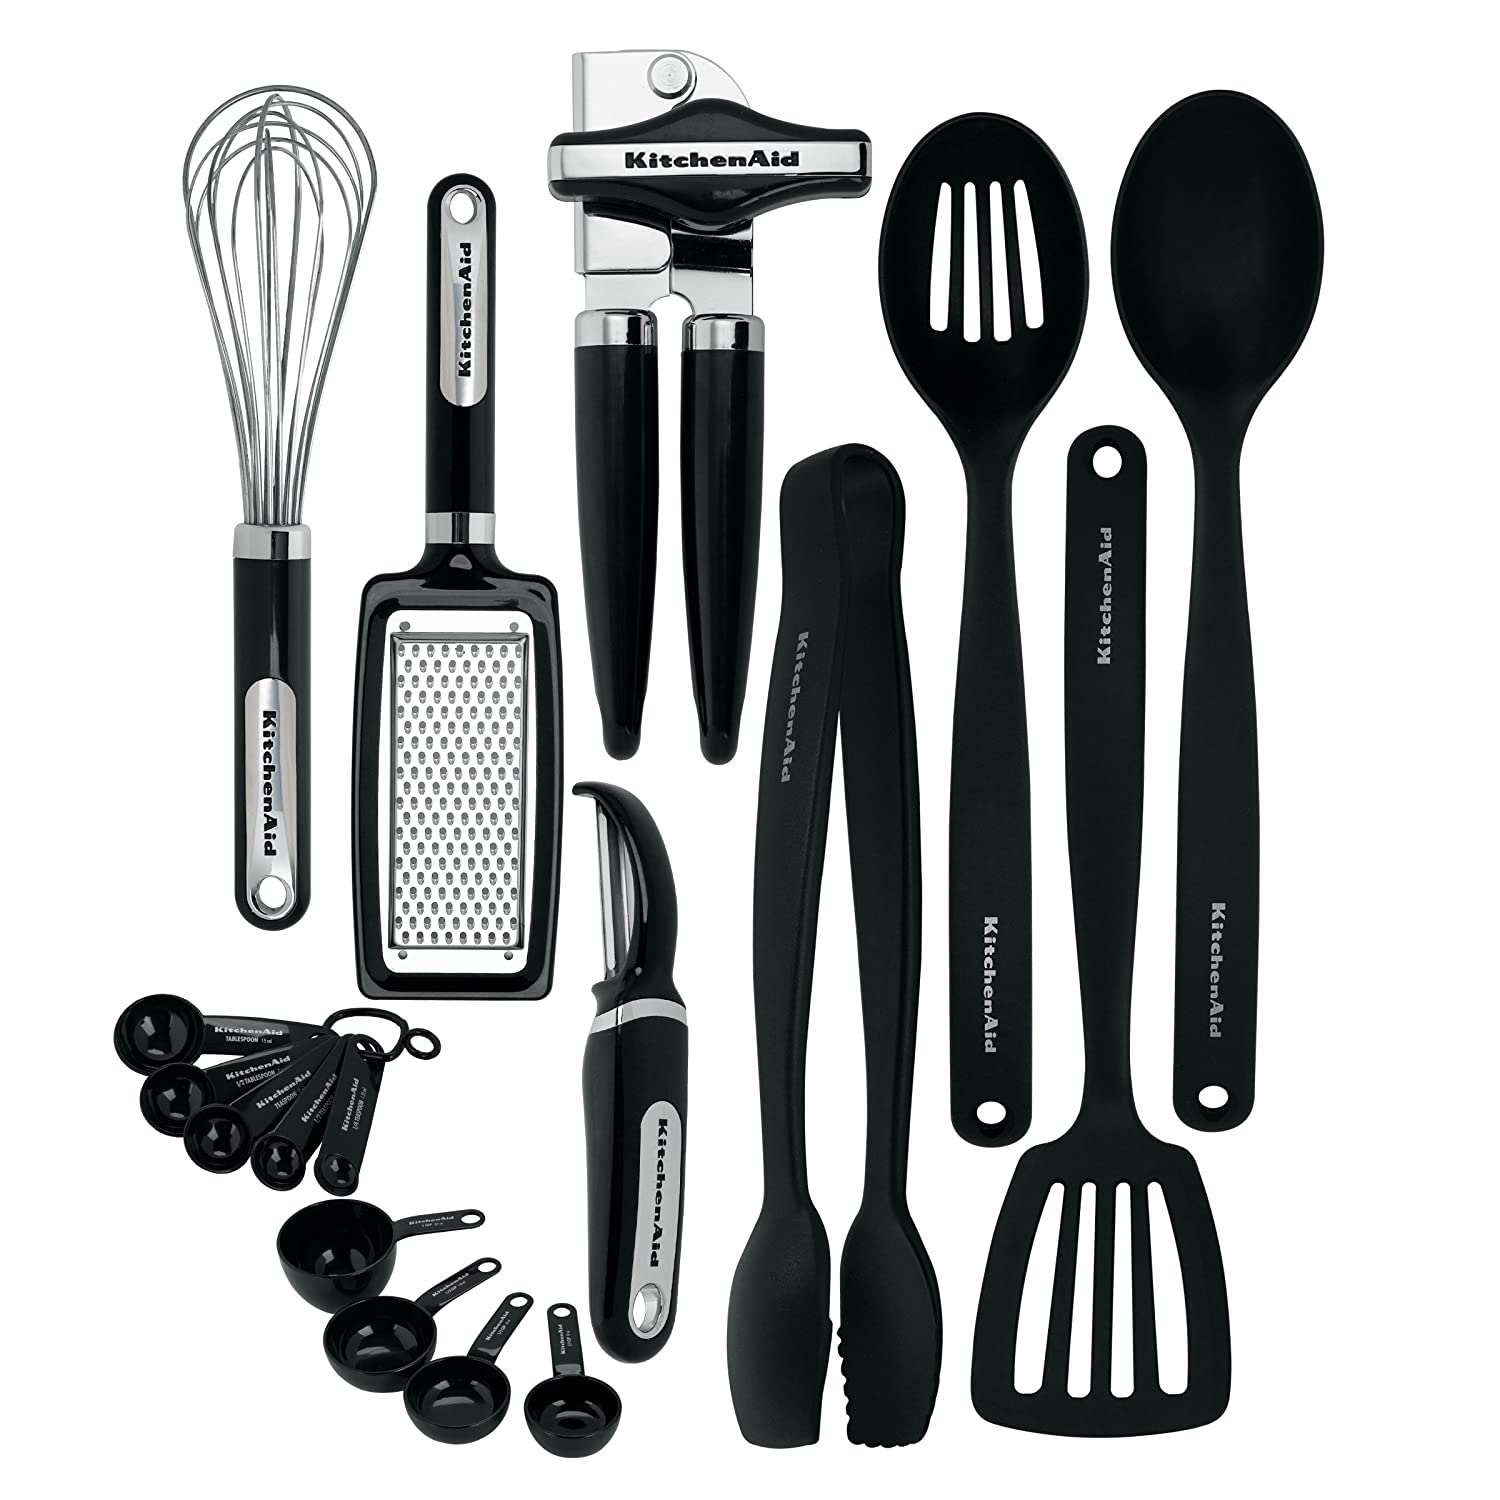 Amazon.com: KitchenAid 17-Piece Tools and Gadget Set, Black ...